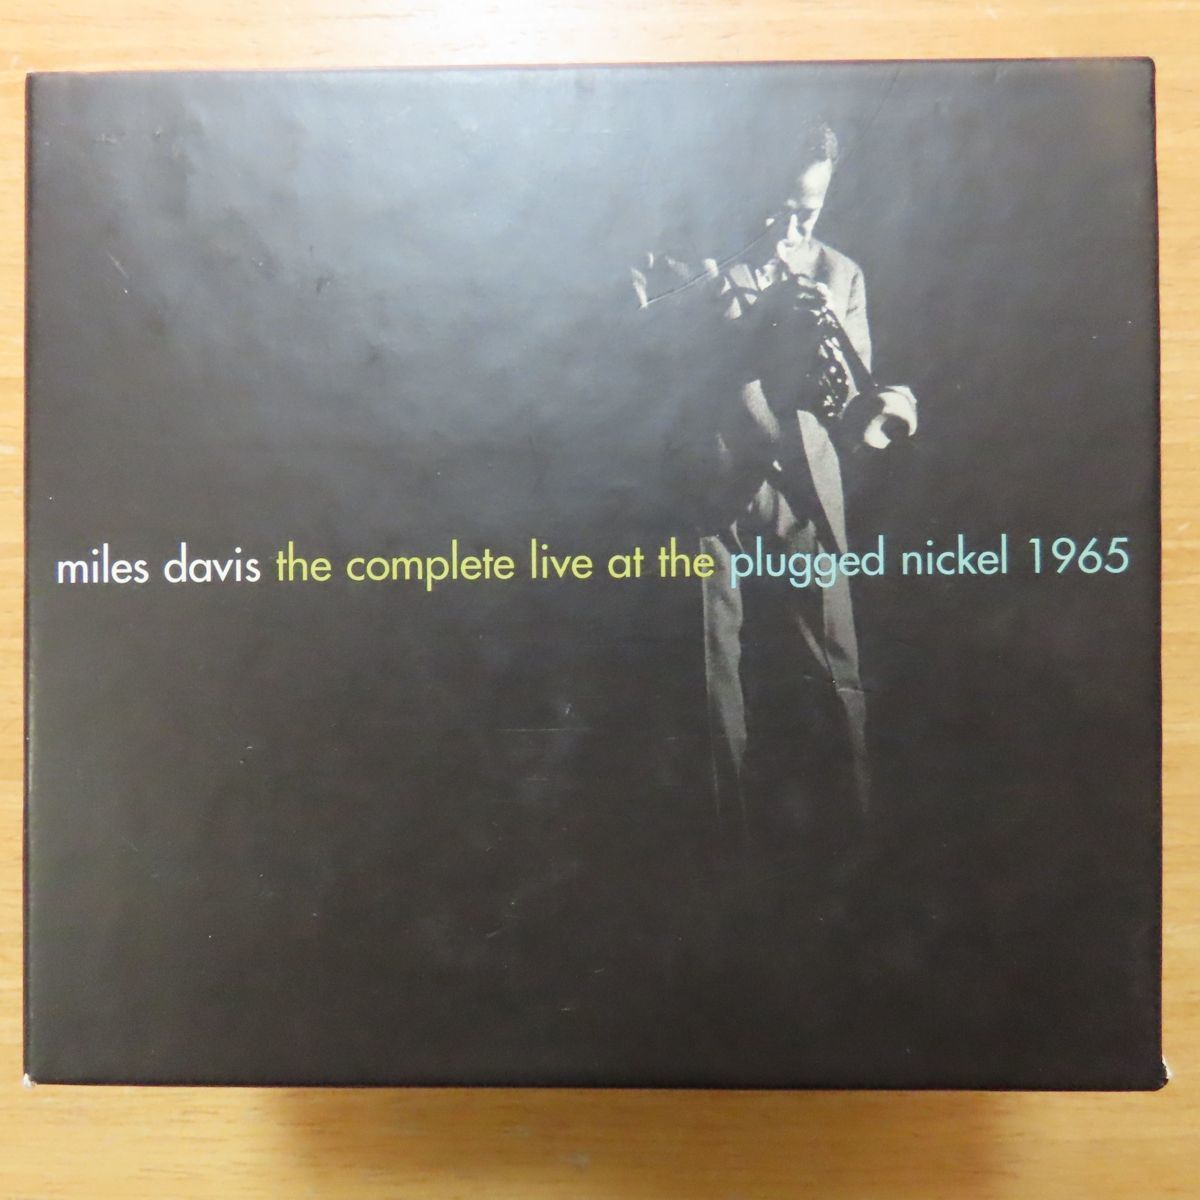 074646695524;【8CDBOX】マイルス・デイビス / The Complete Live At The Plugged Nickel 1965